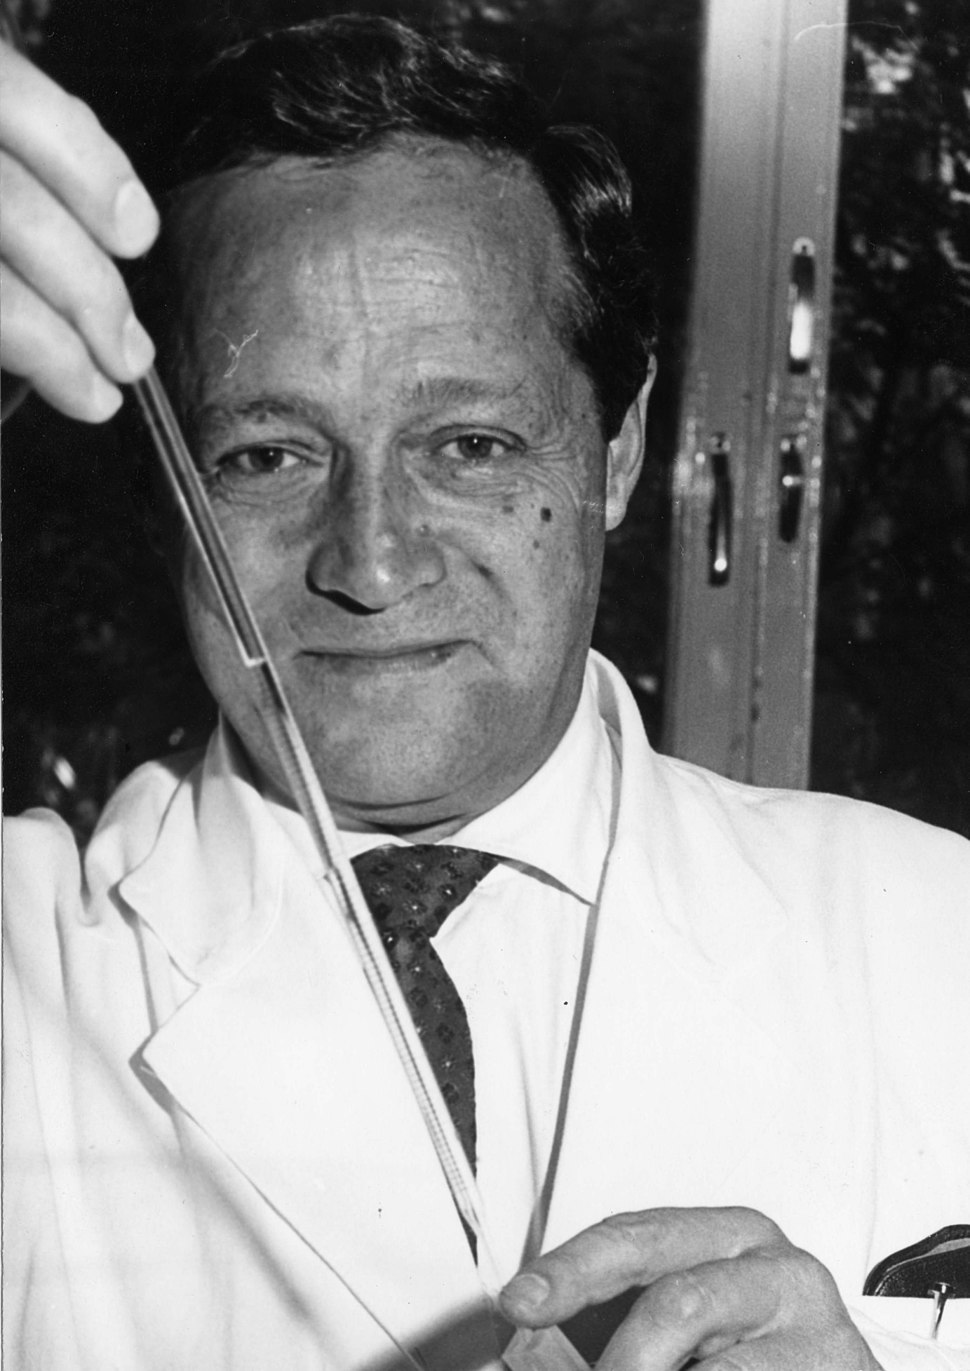 Feodor Lynen with pipette